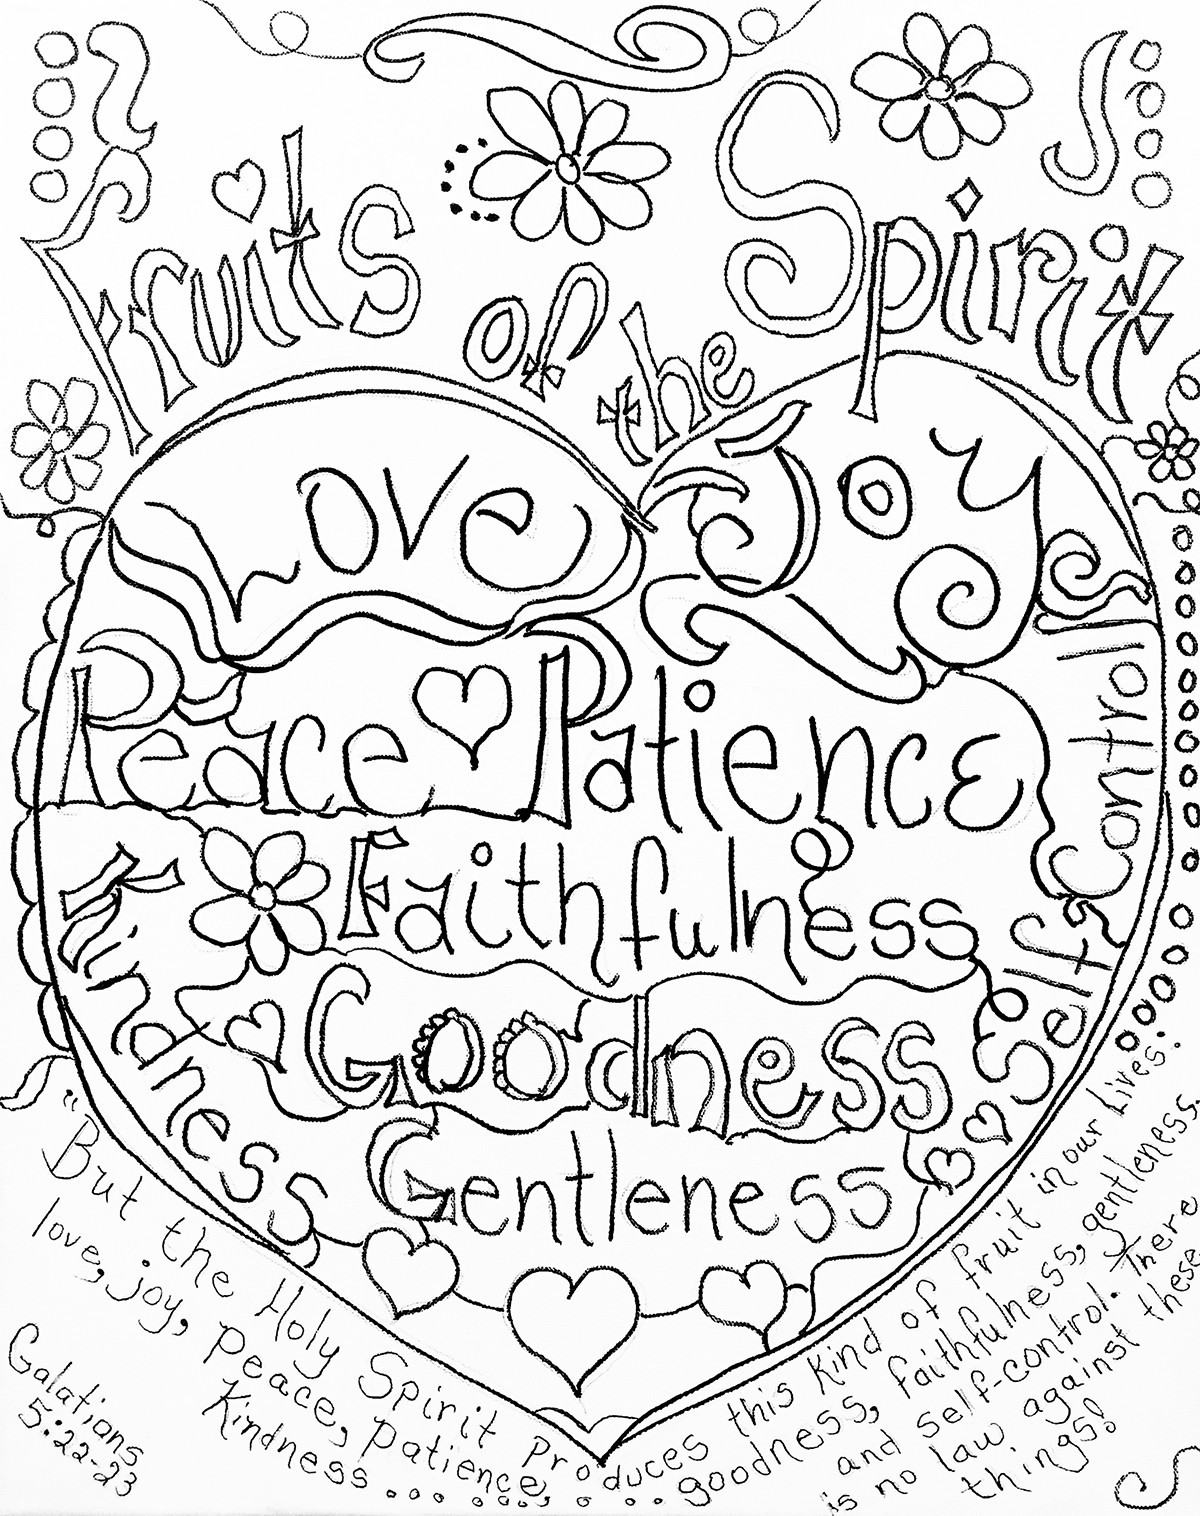 Fruits Of The Spirit Coloring Pagecarolyn Altman. Galatians 5:22 - Fruit Of The Spirit Free Printable